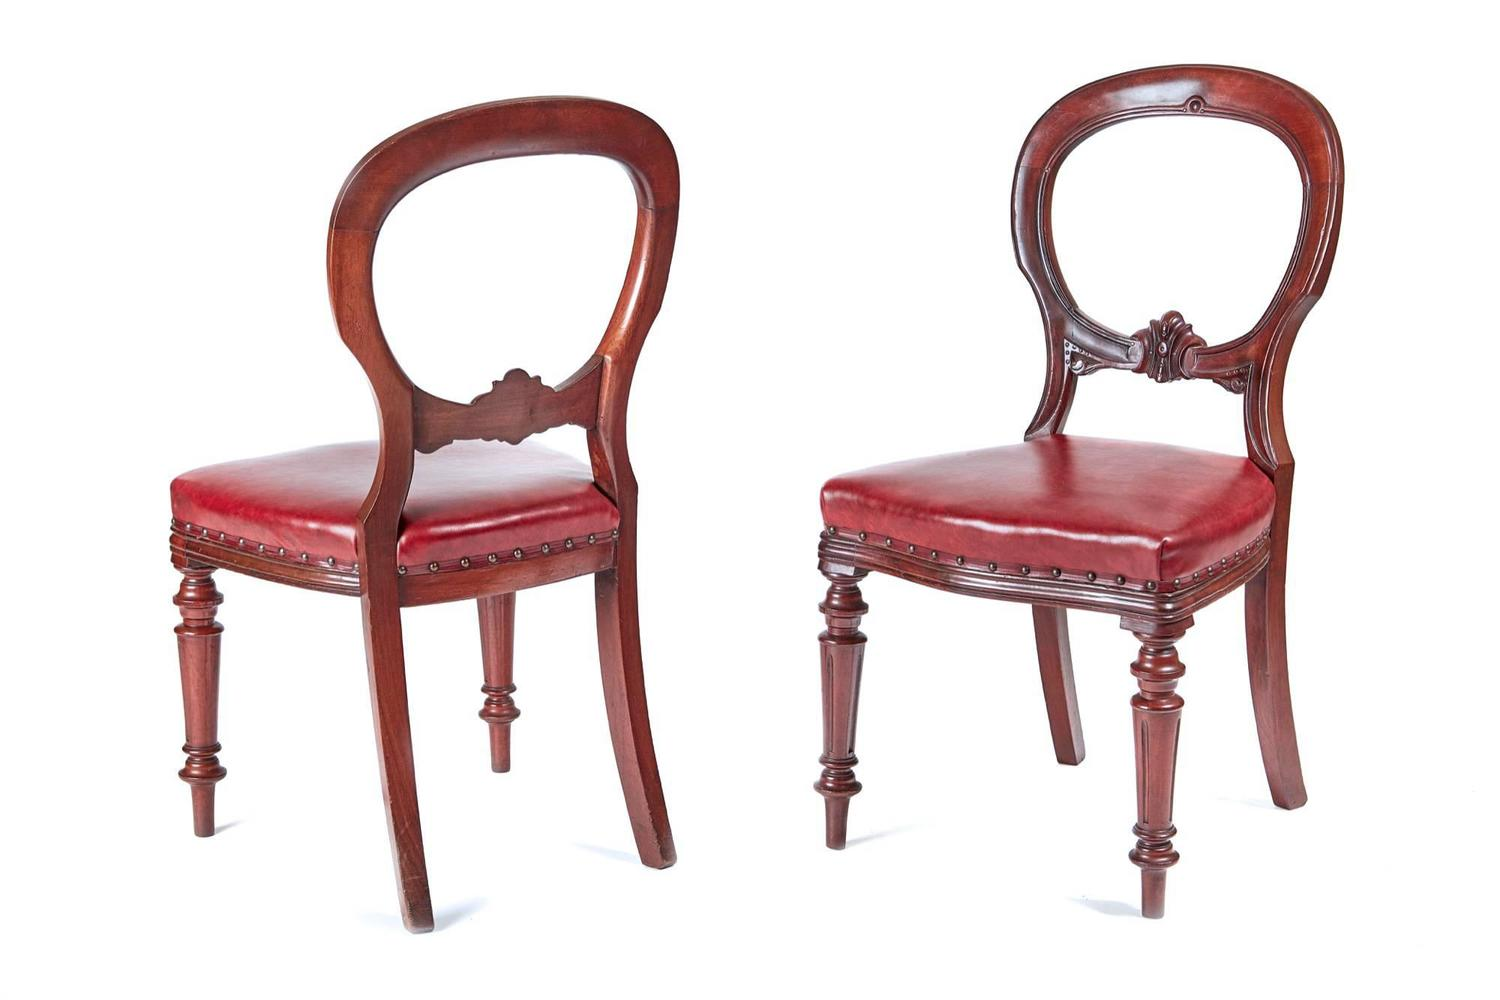 Balloon Chair For Sale Set Of Six 19th Century Balloon Back Leather Dining Chairs